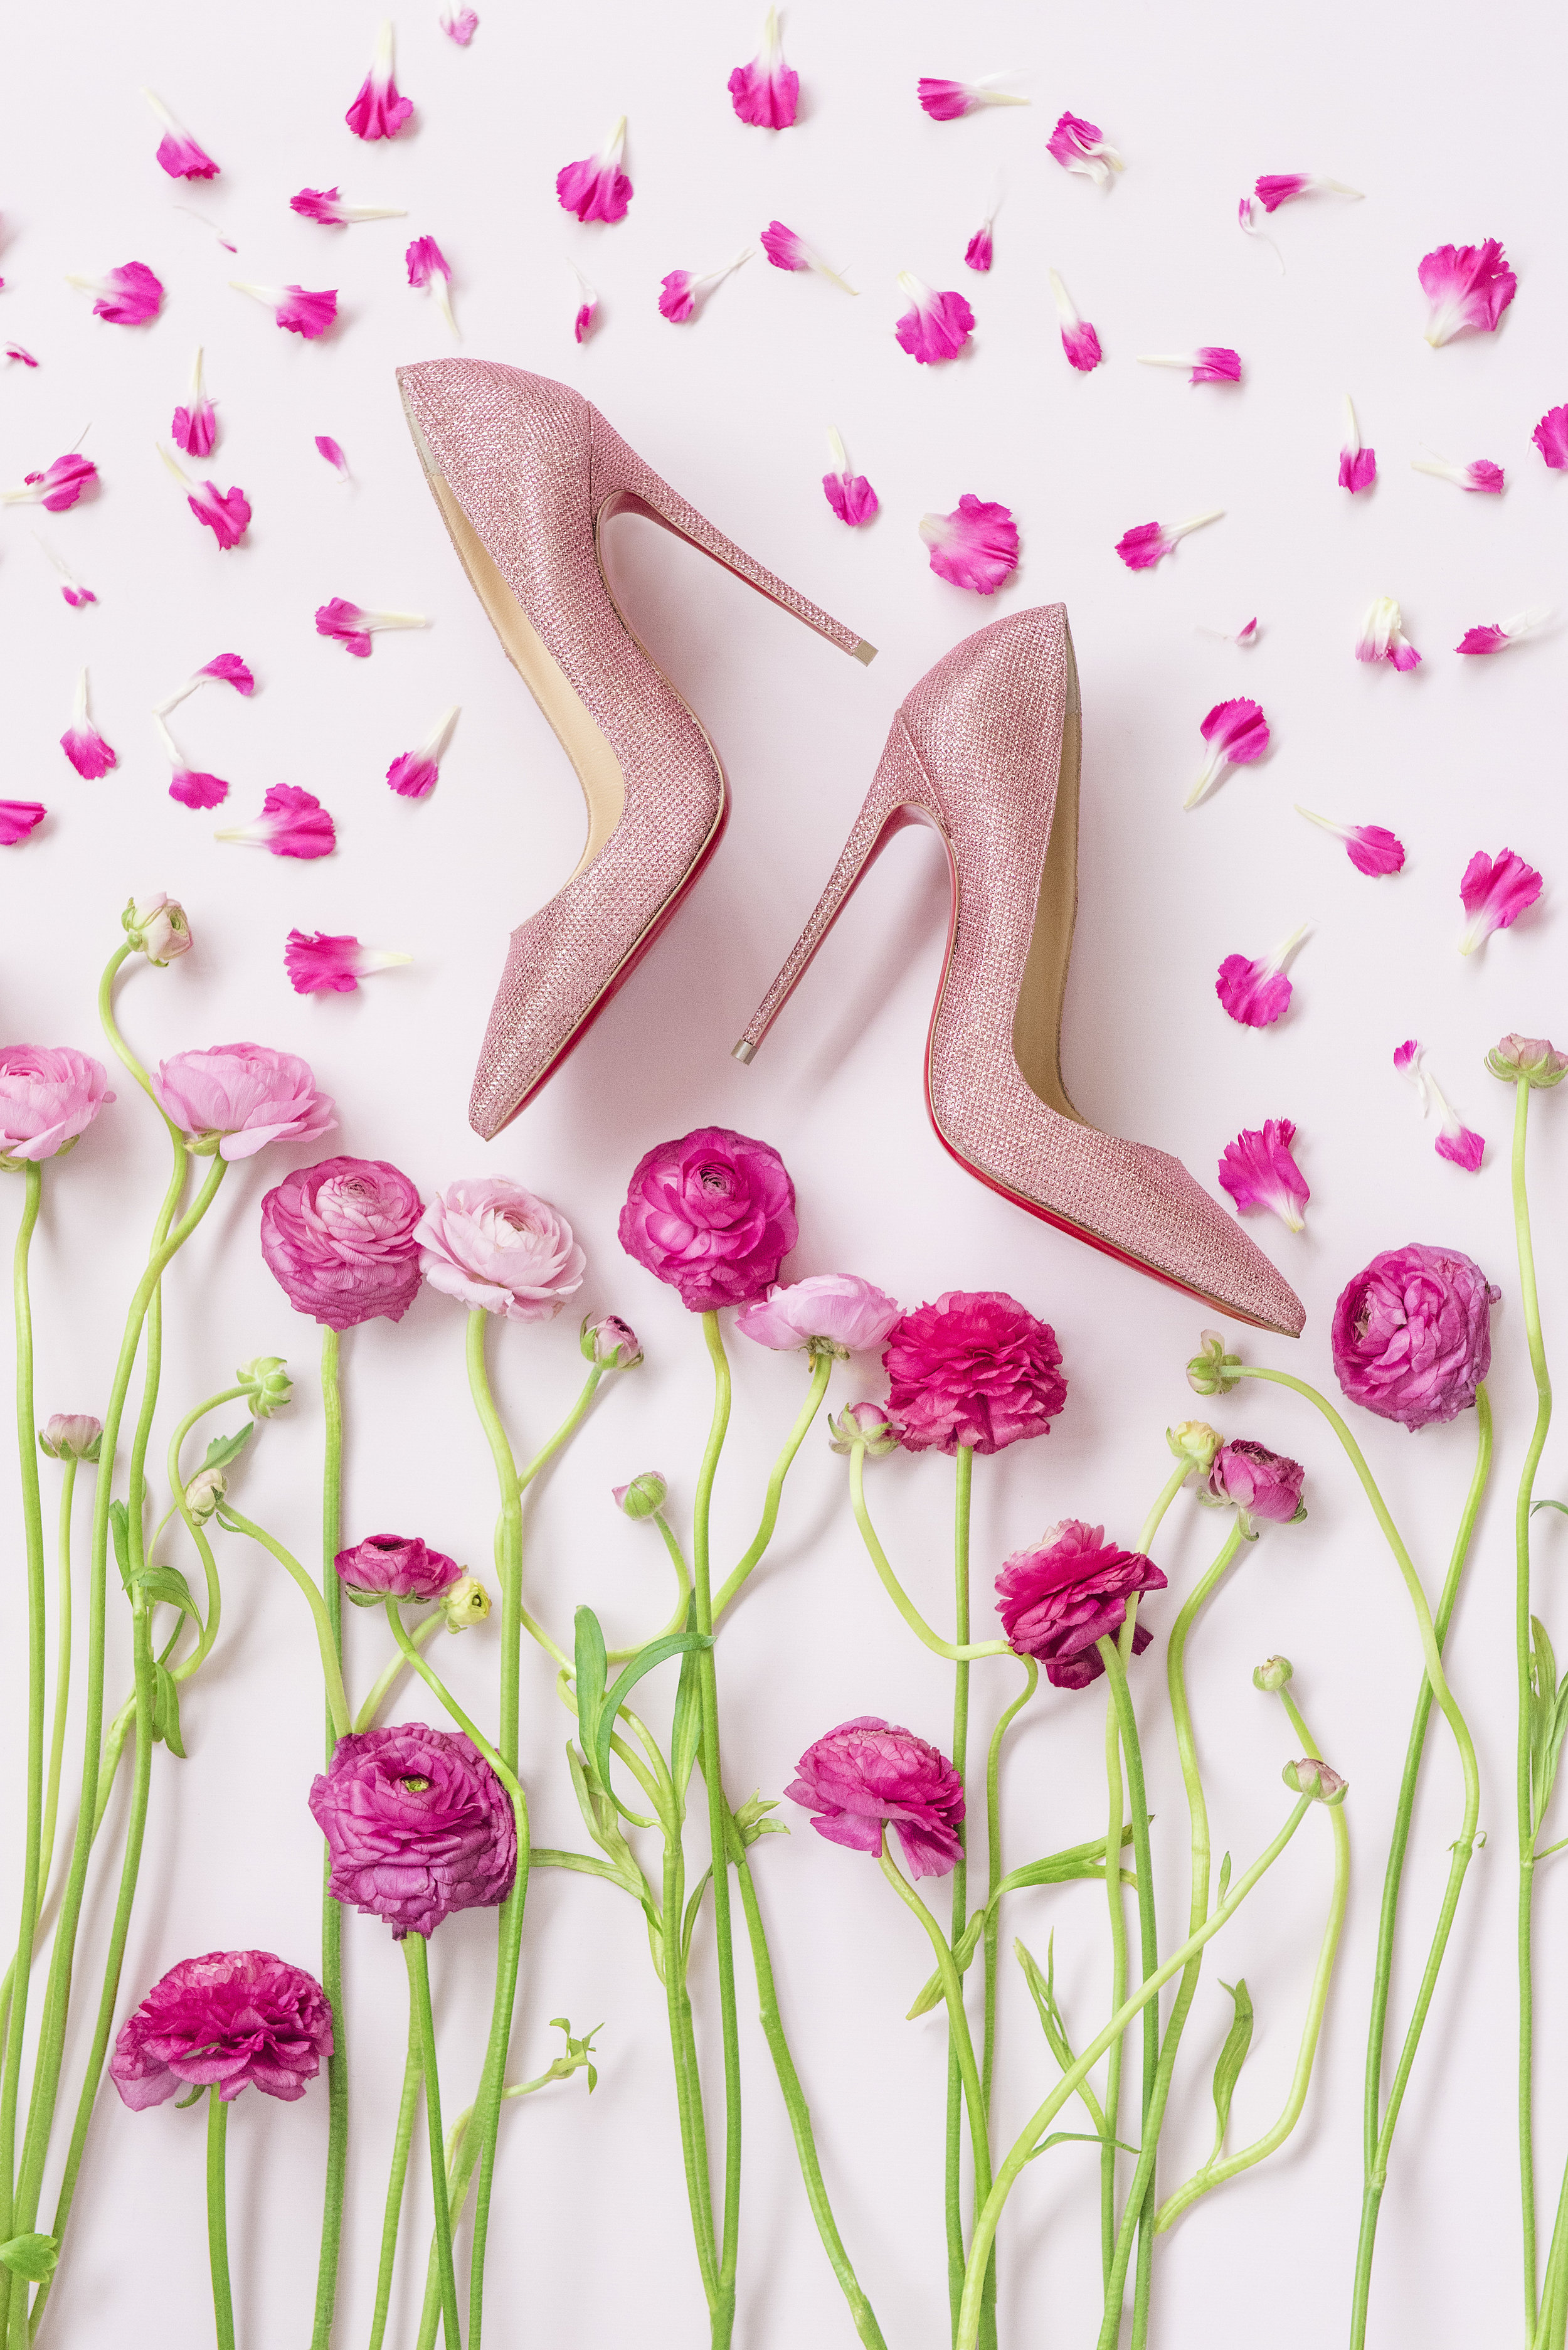 August In Bloom - Wedding Shoes Christian Louboutins - Dior Darling (Wedluxe)